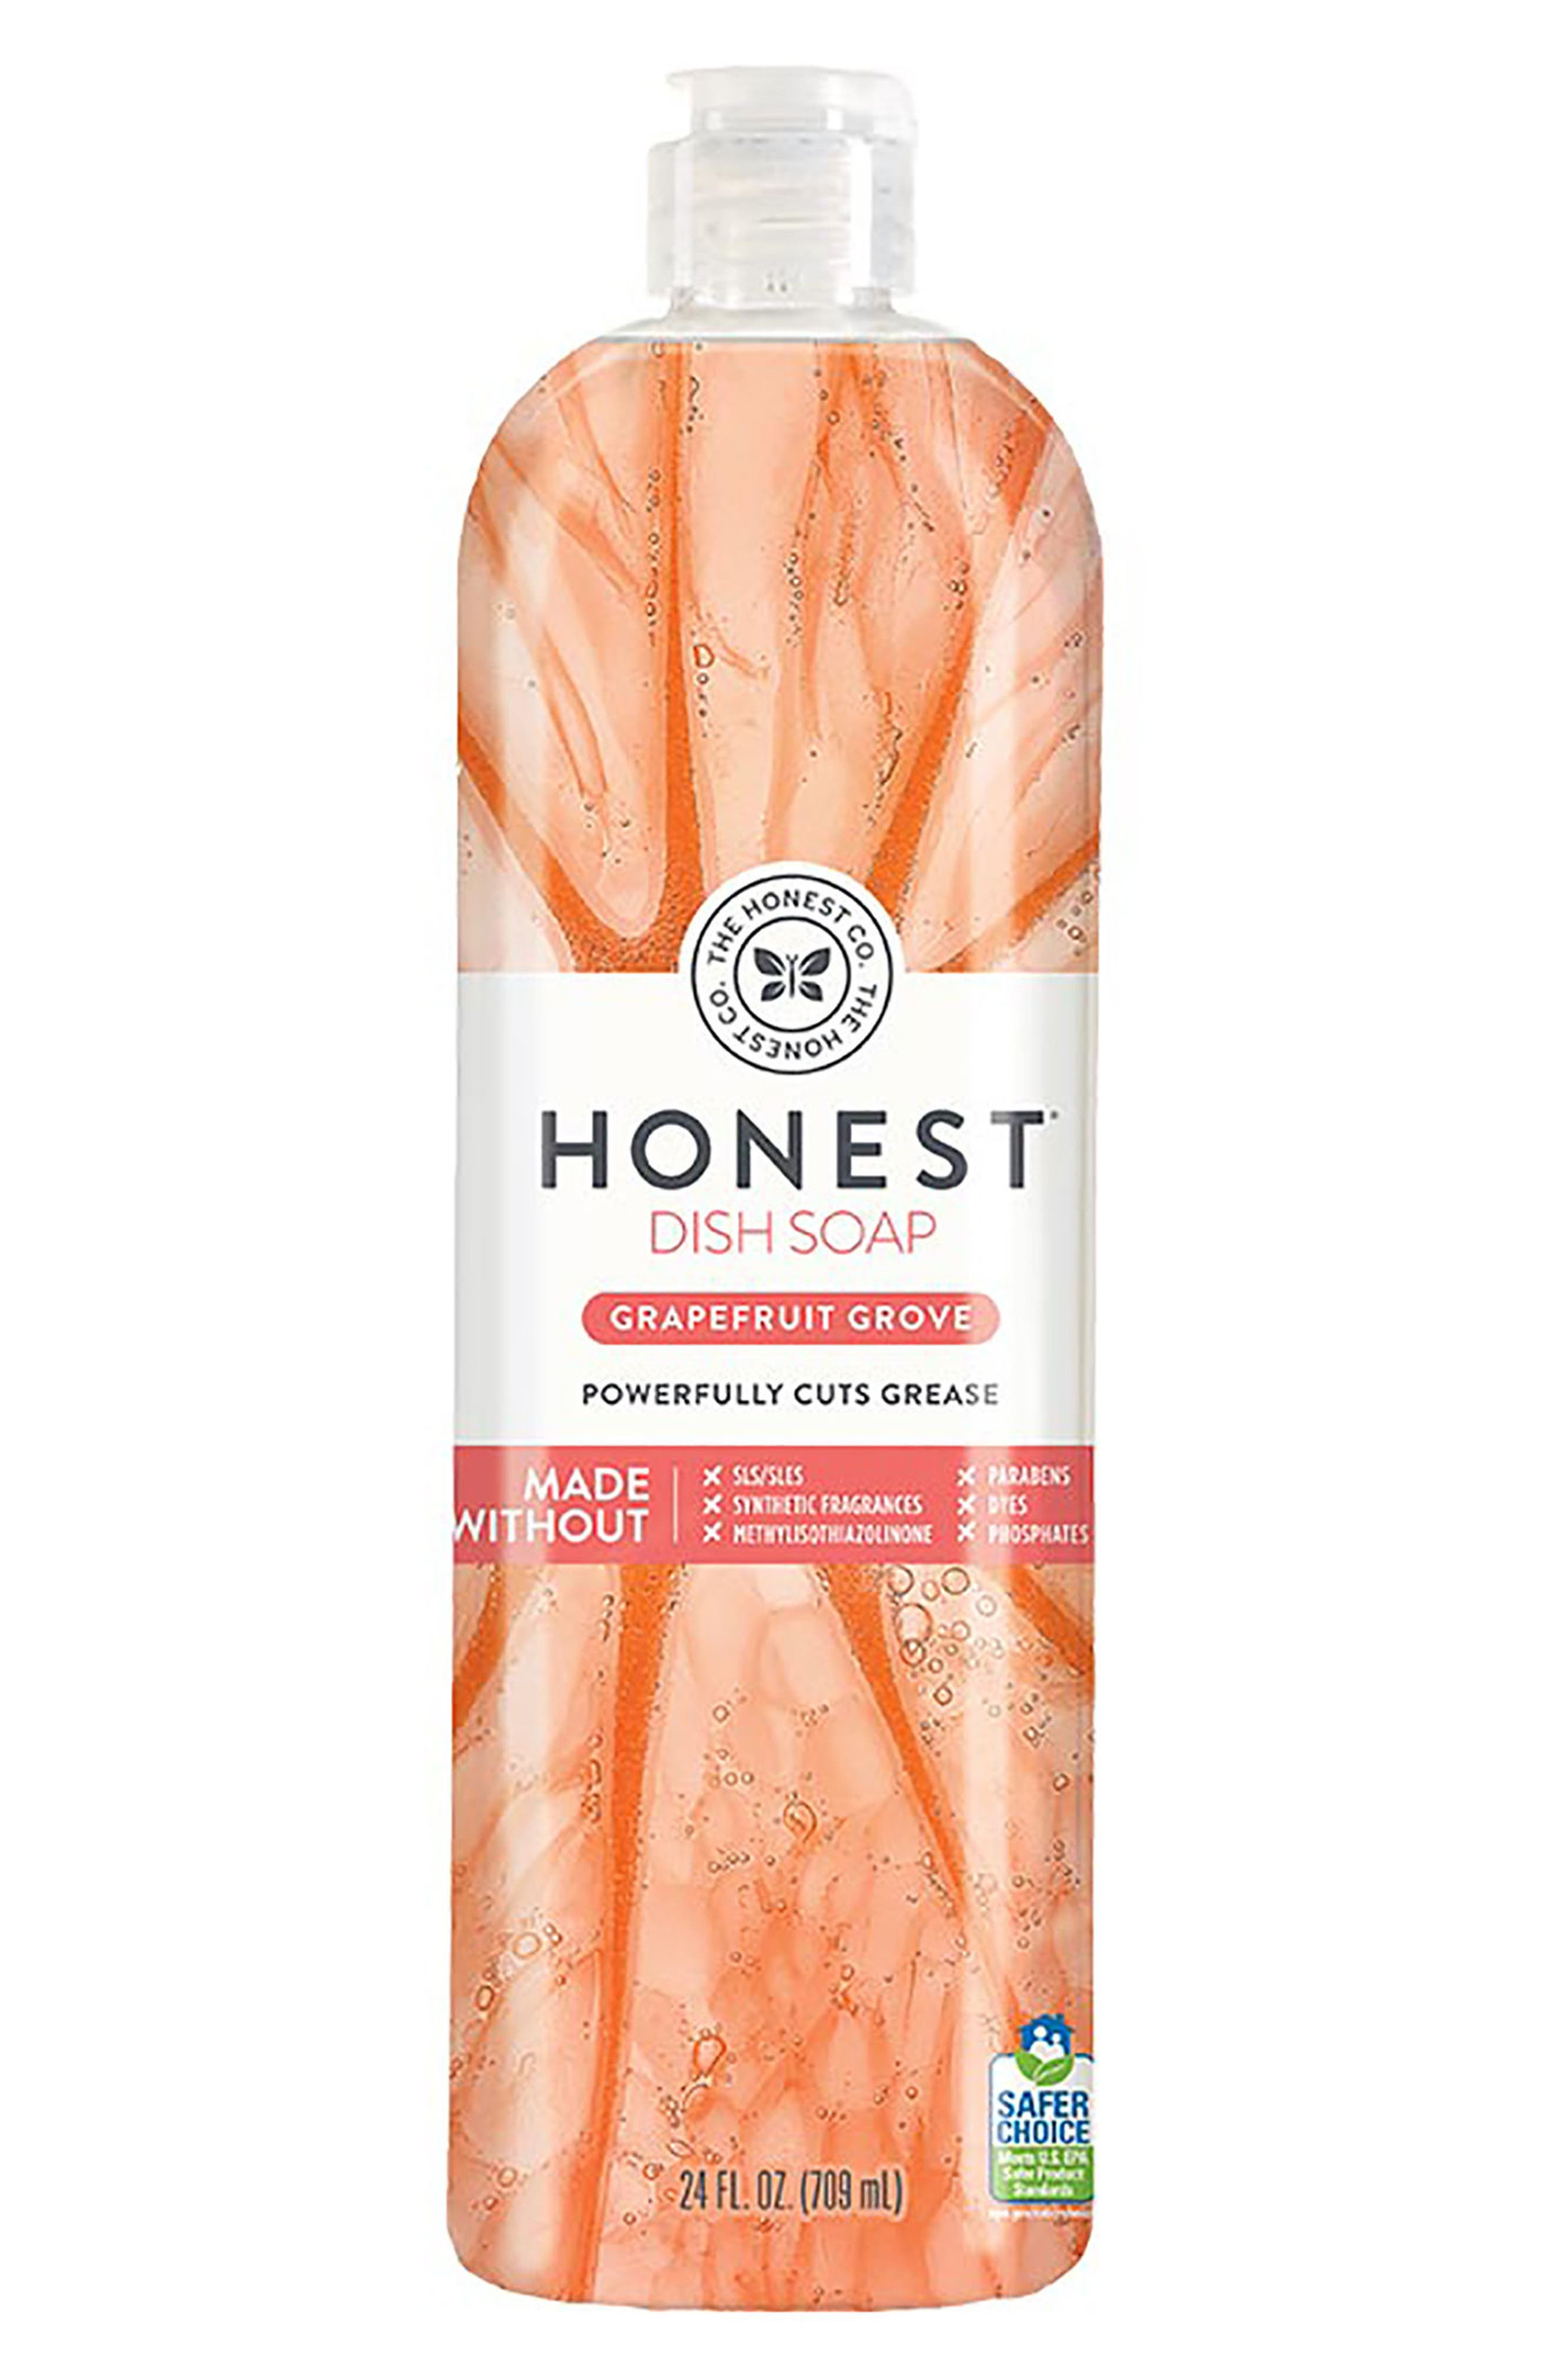 The Honest Company Grapefruit Grove Dish Soap